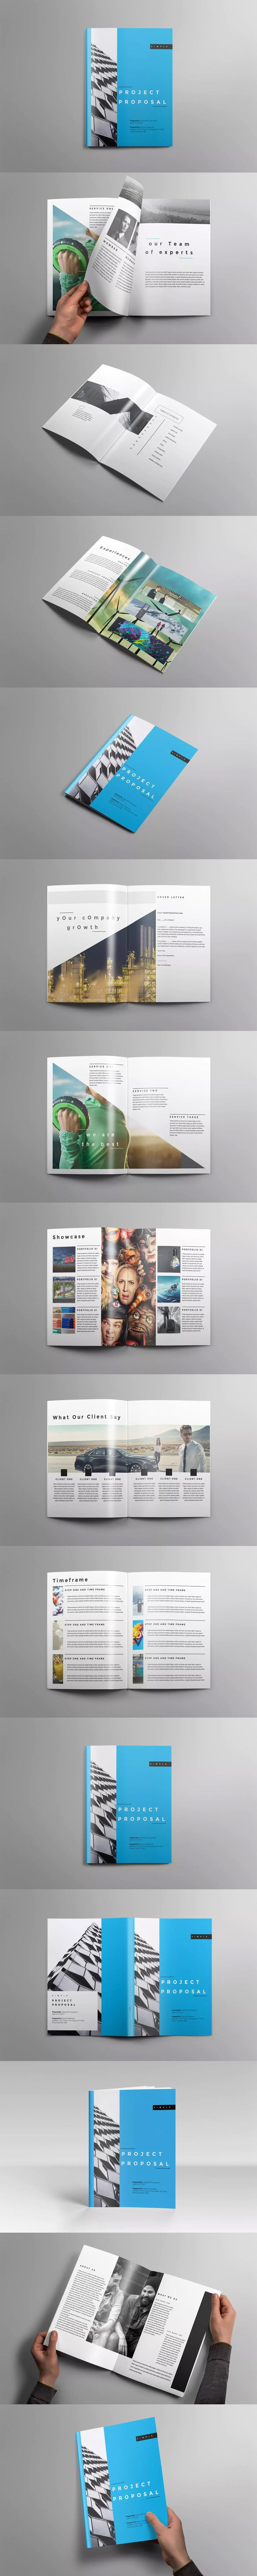 agency proposal template%0A Proposal Template InDesign INDD US Letter Size